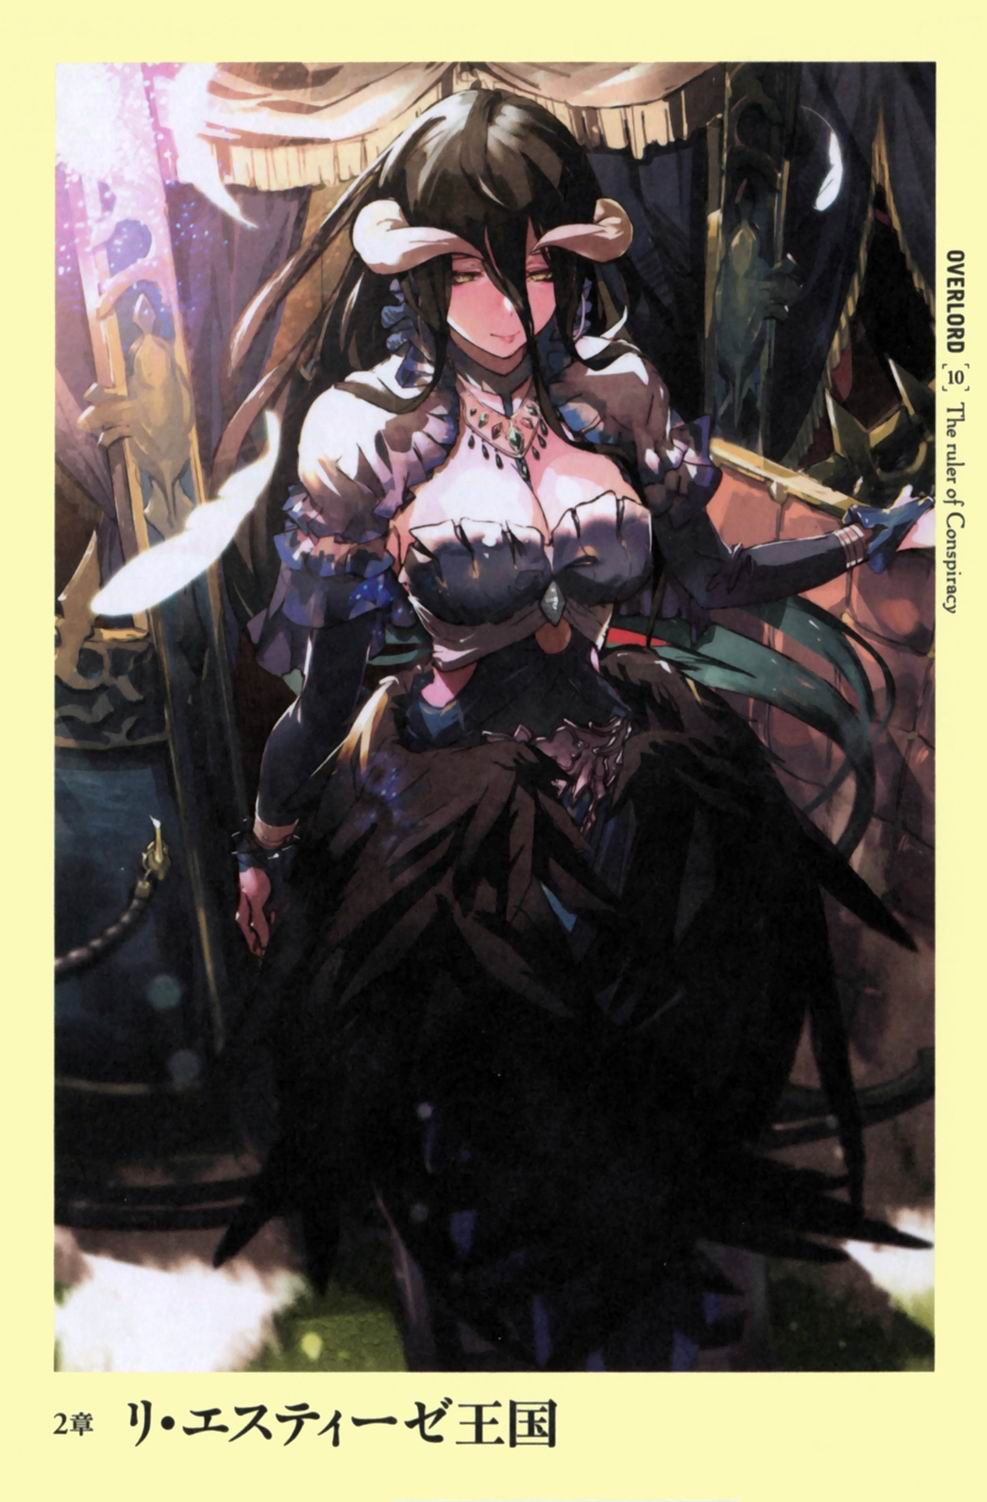 Spoilers Overlord Volume 10 - The Ruler of Conspiracy